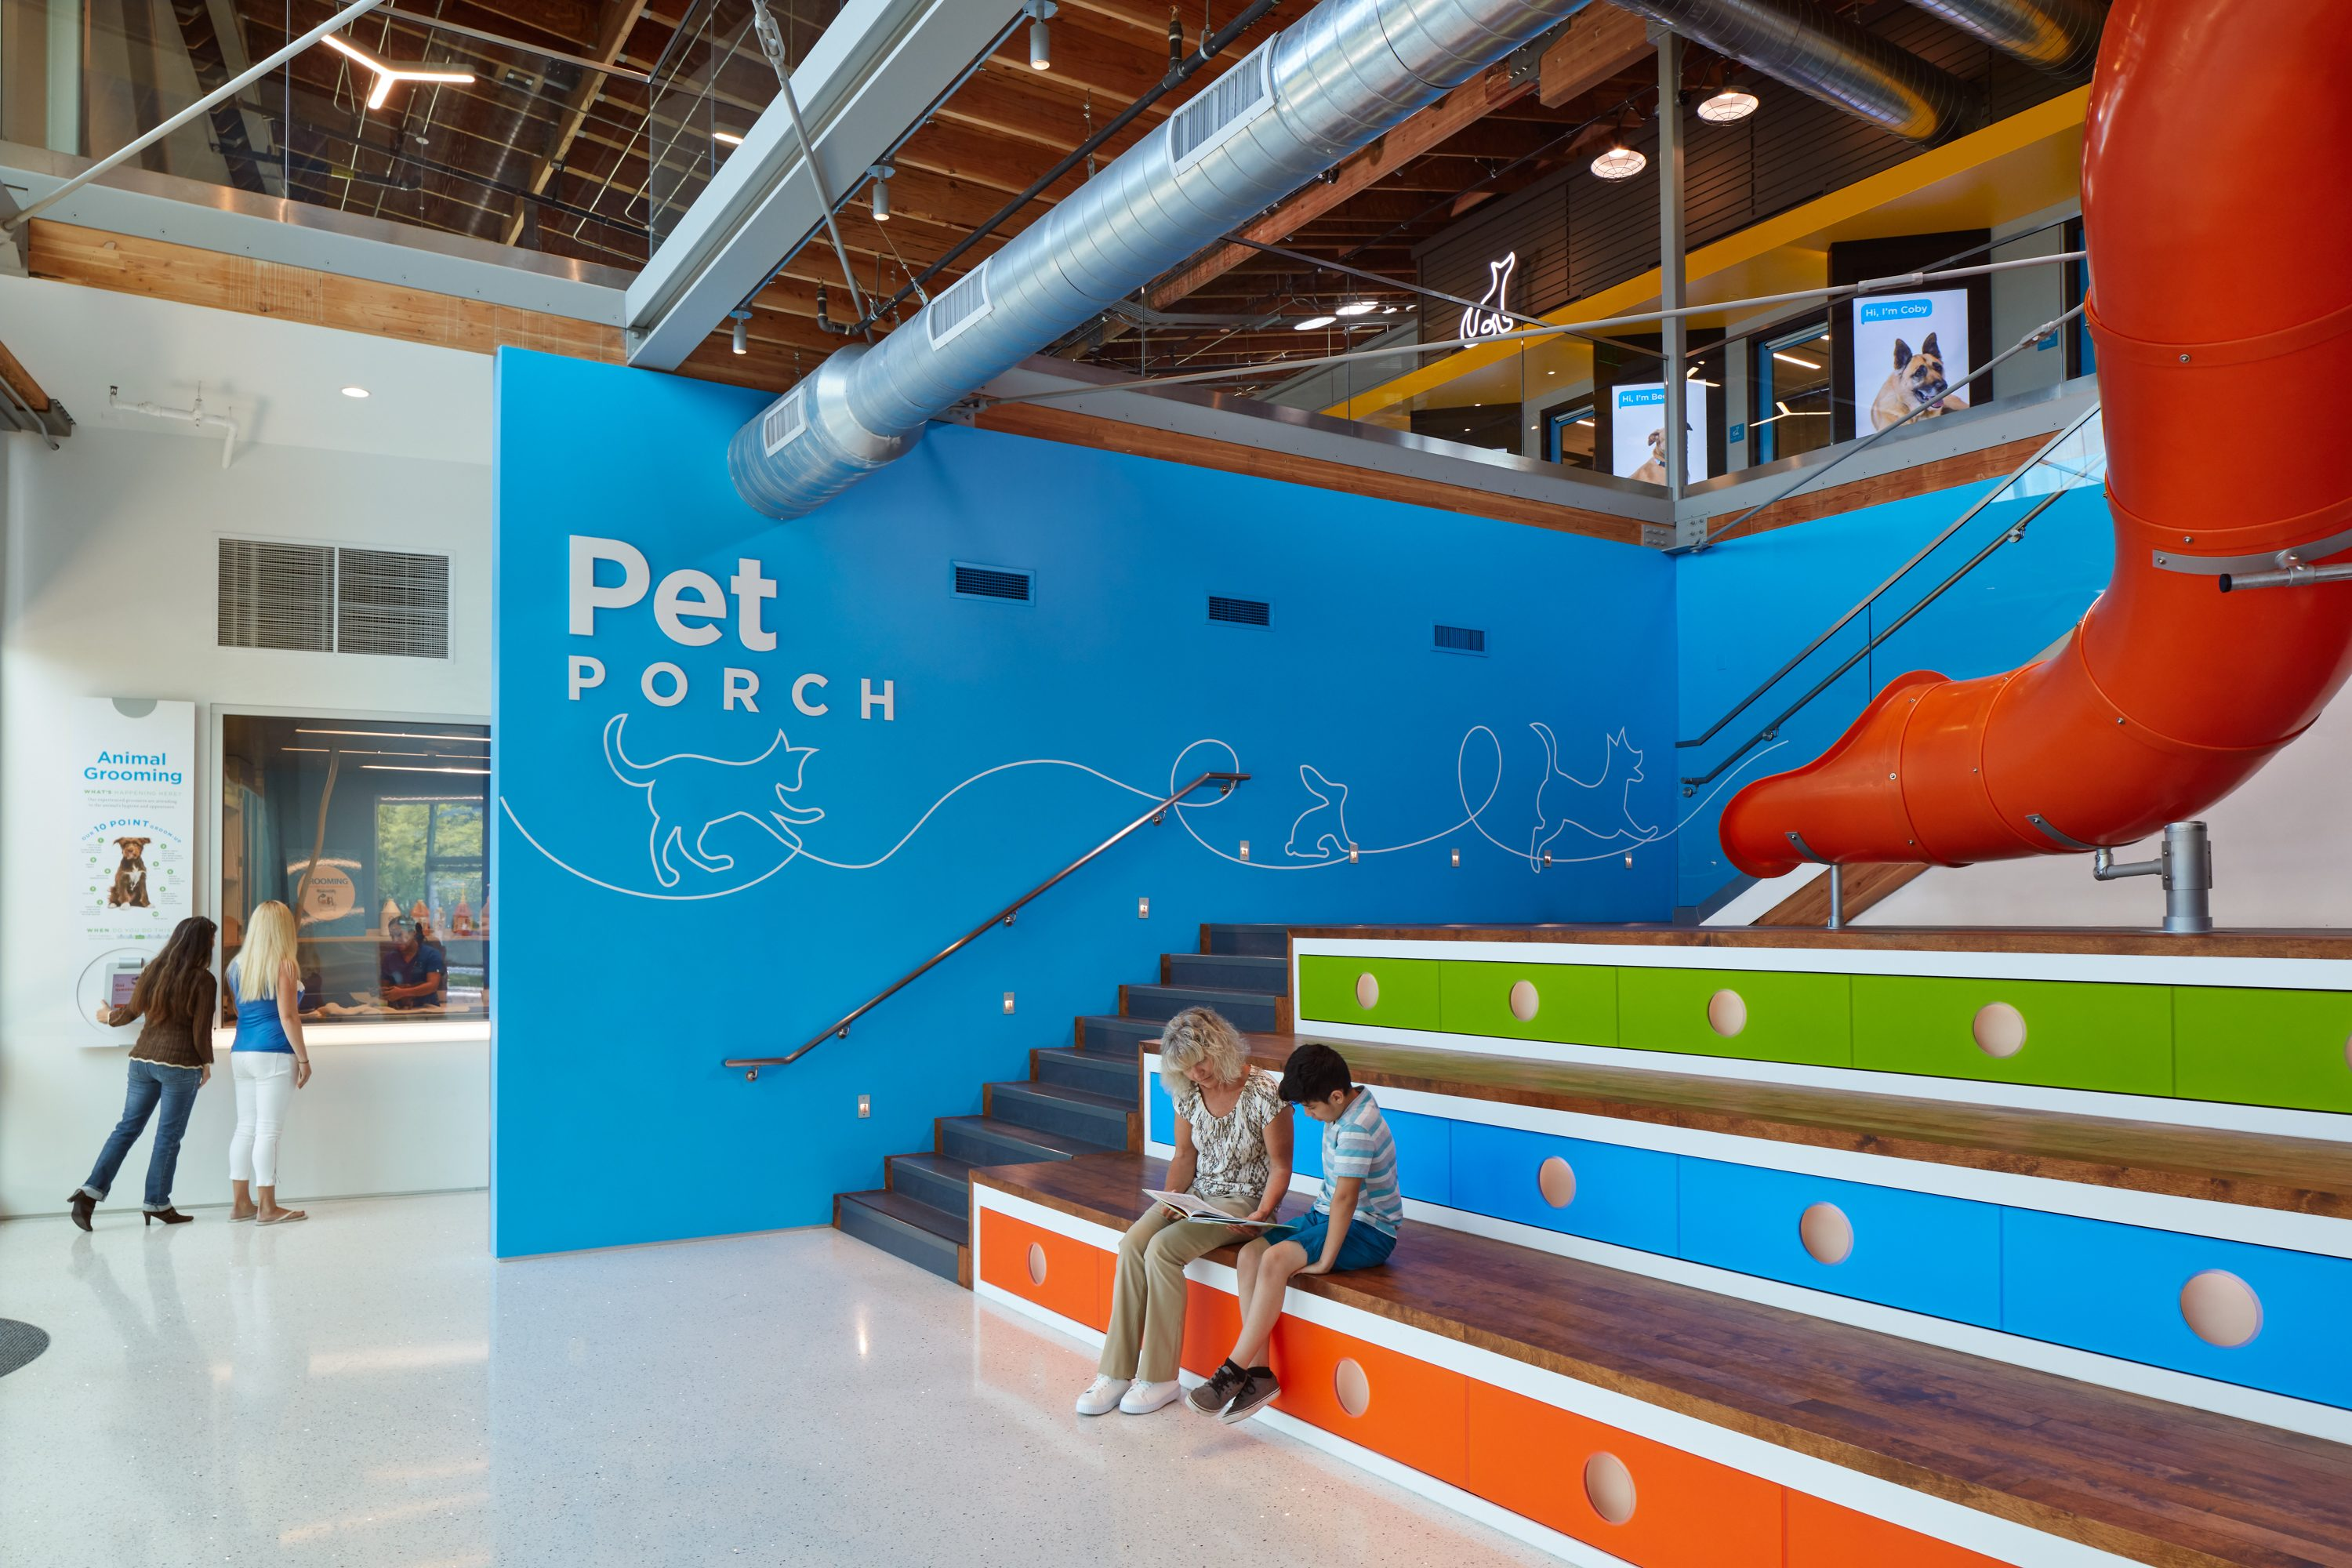 MATT construction Annenberg Playa Vista PetSpace Interior pet porch